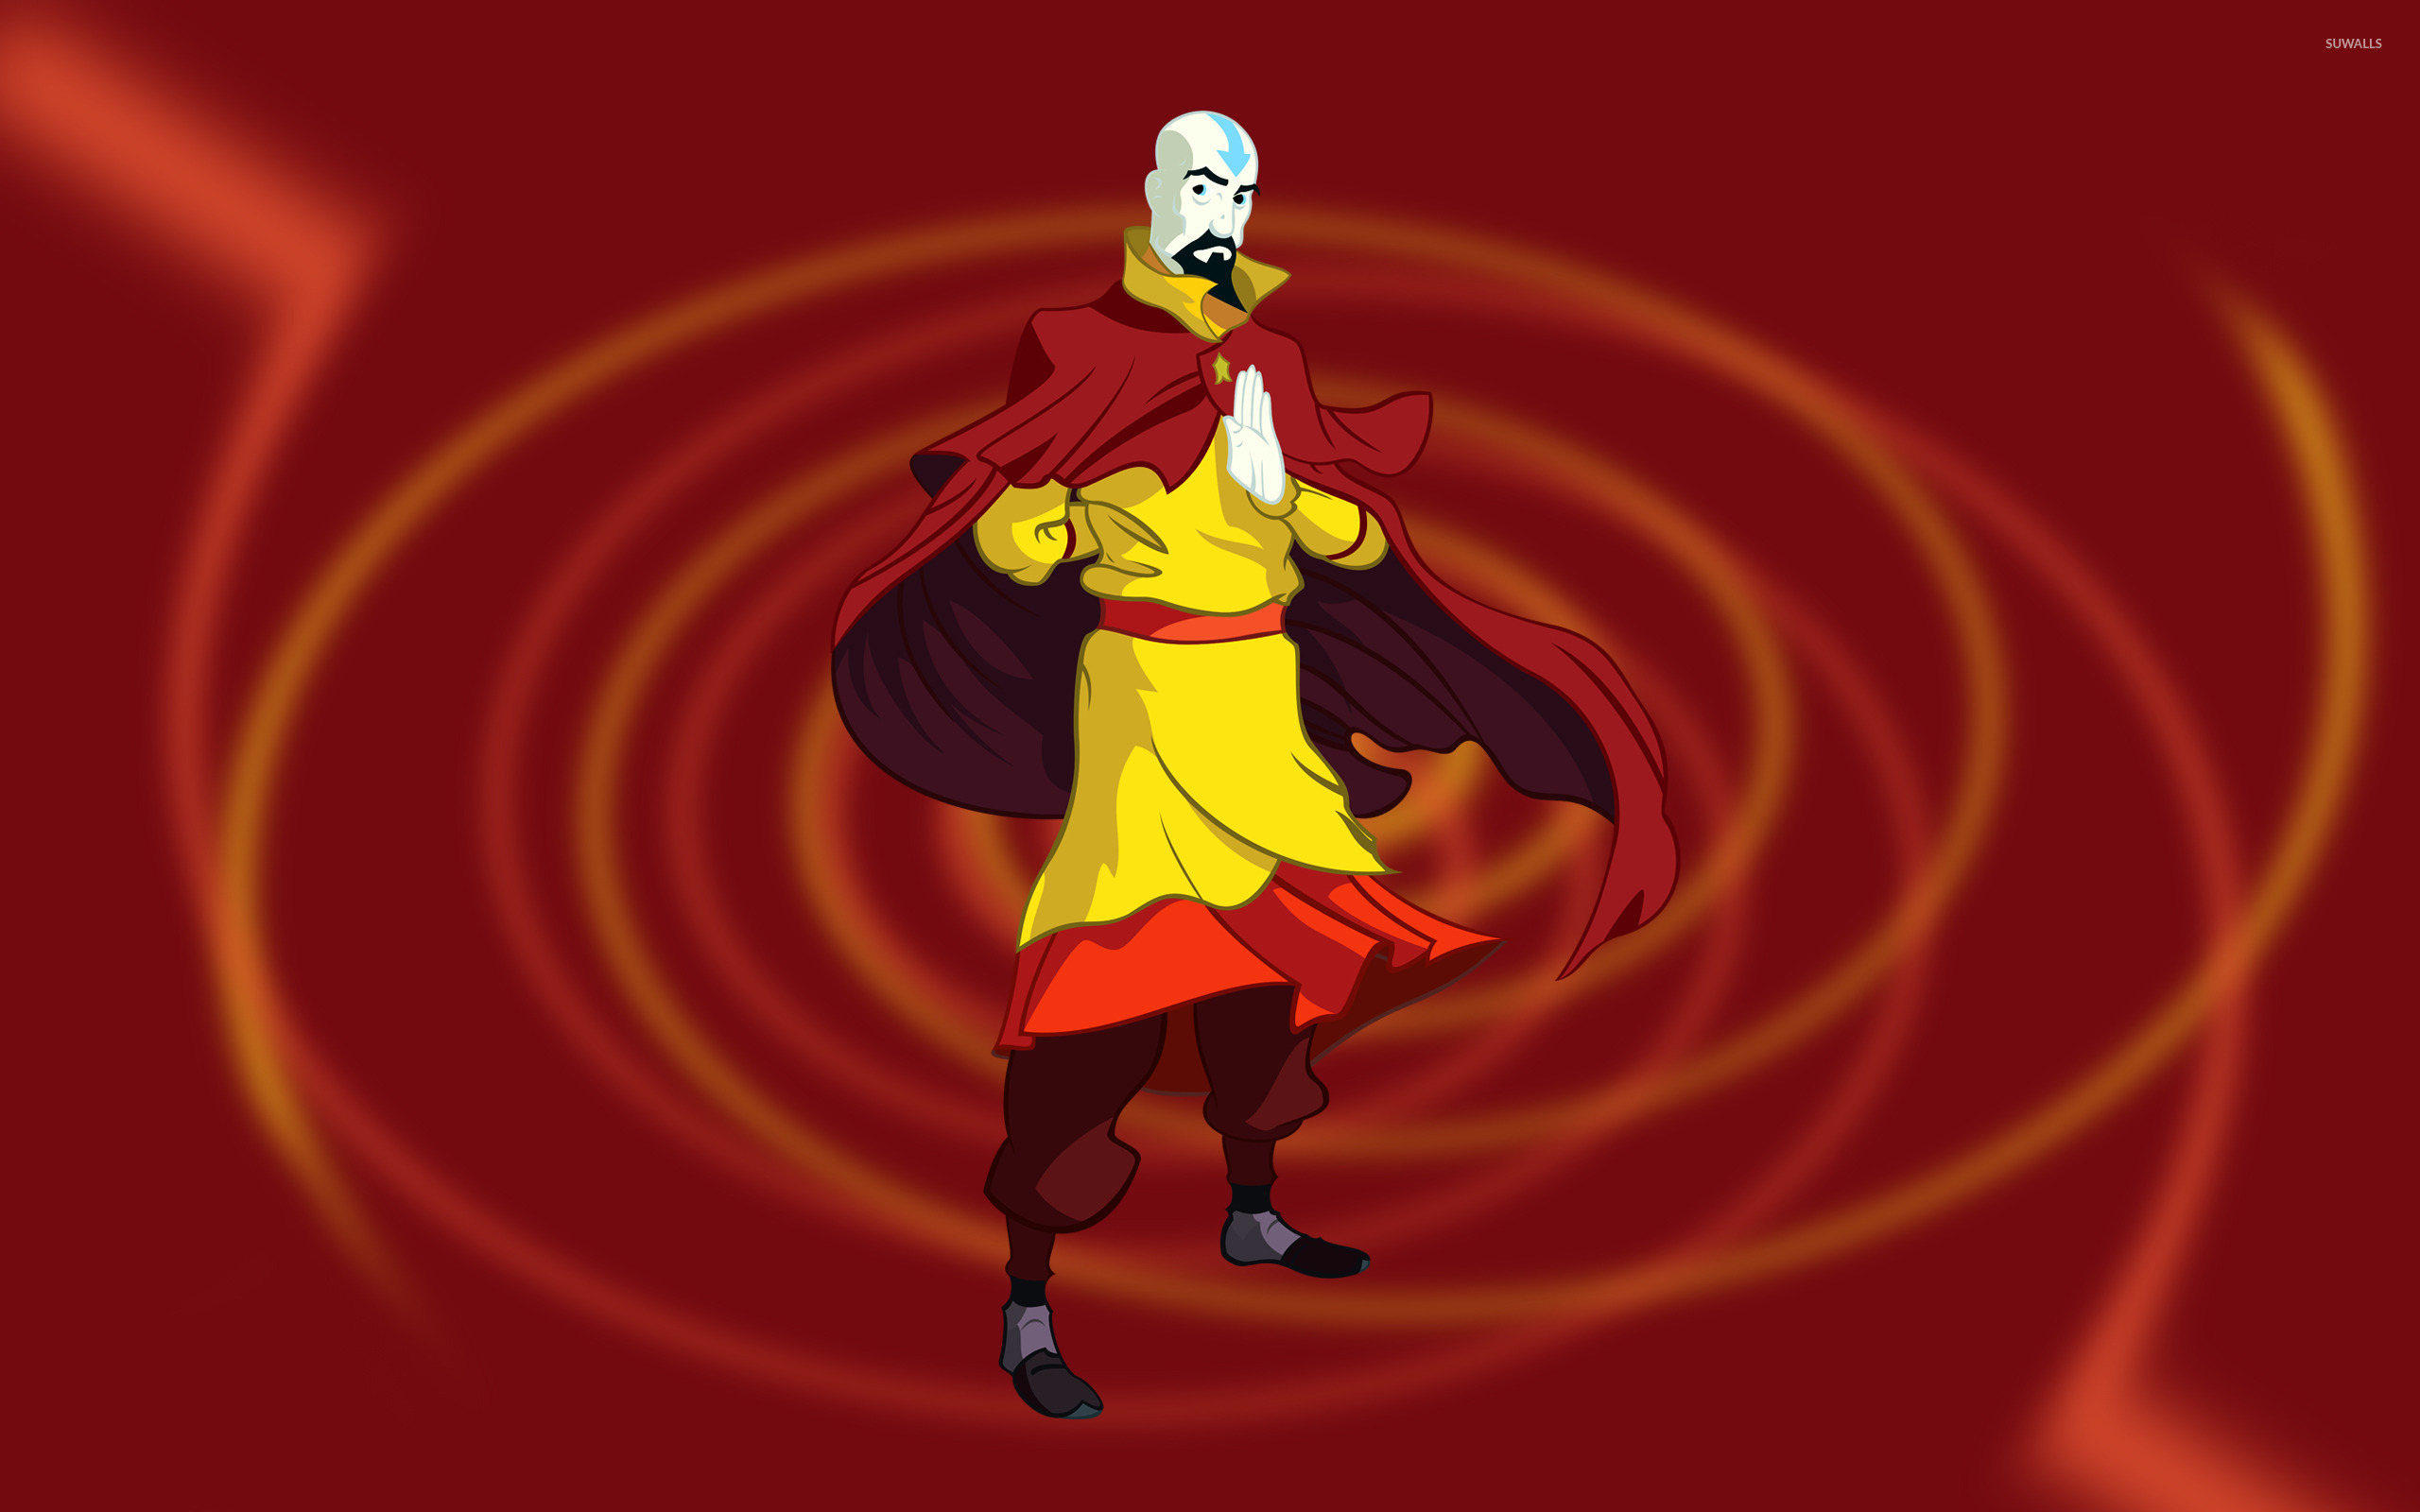 Tenzin avatar the legend of korra 2 wallpaper anime tenzin avatar the legend of korra 2 wallpaper voltagebd Images